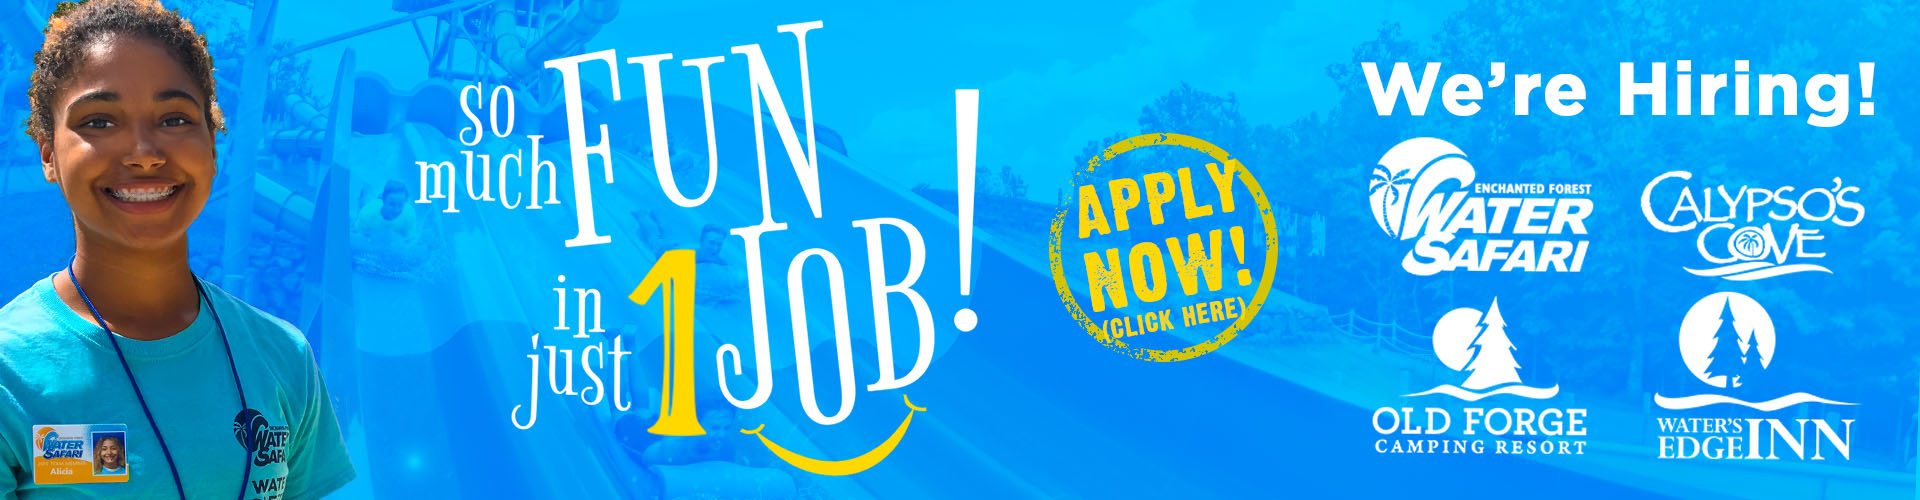 Water Safari Hiring Summer 2021 - Apply Now!